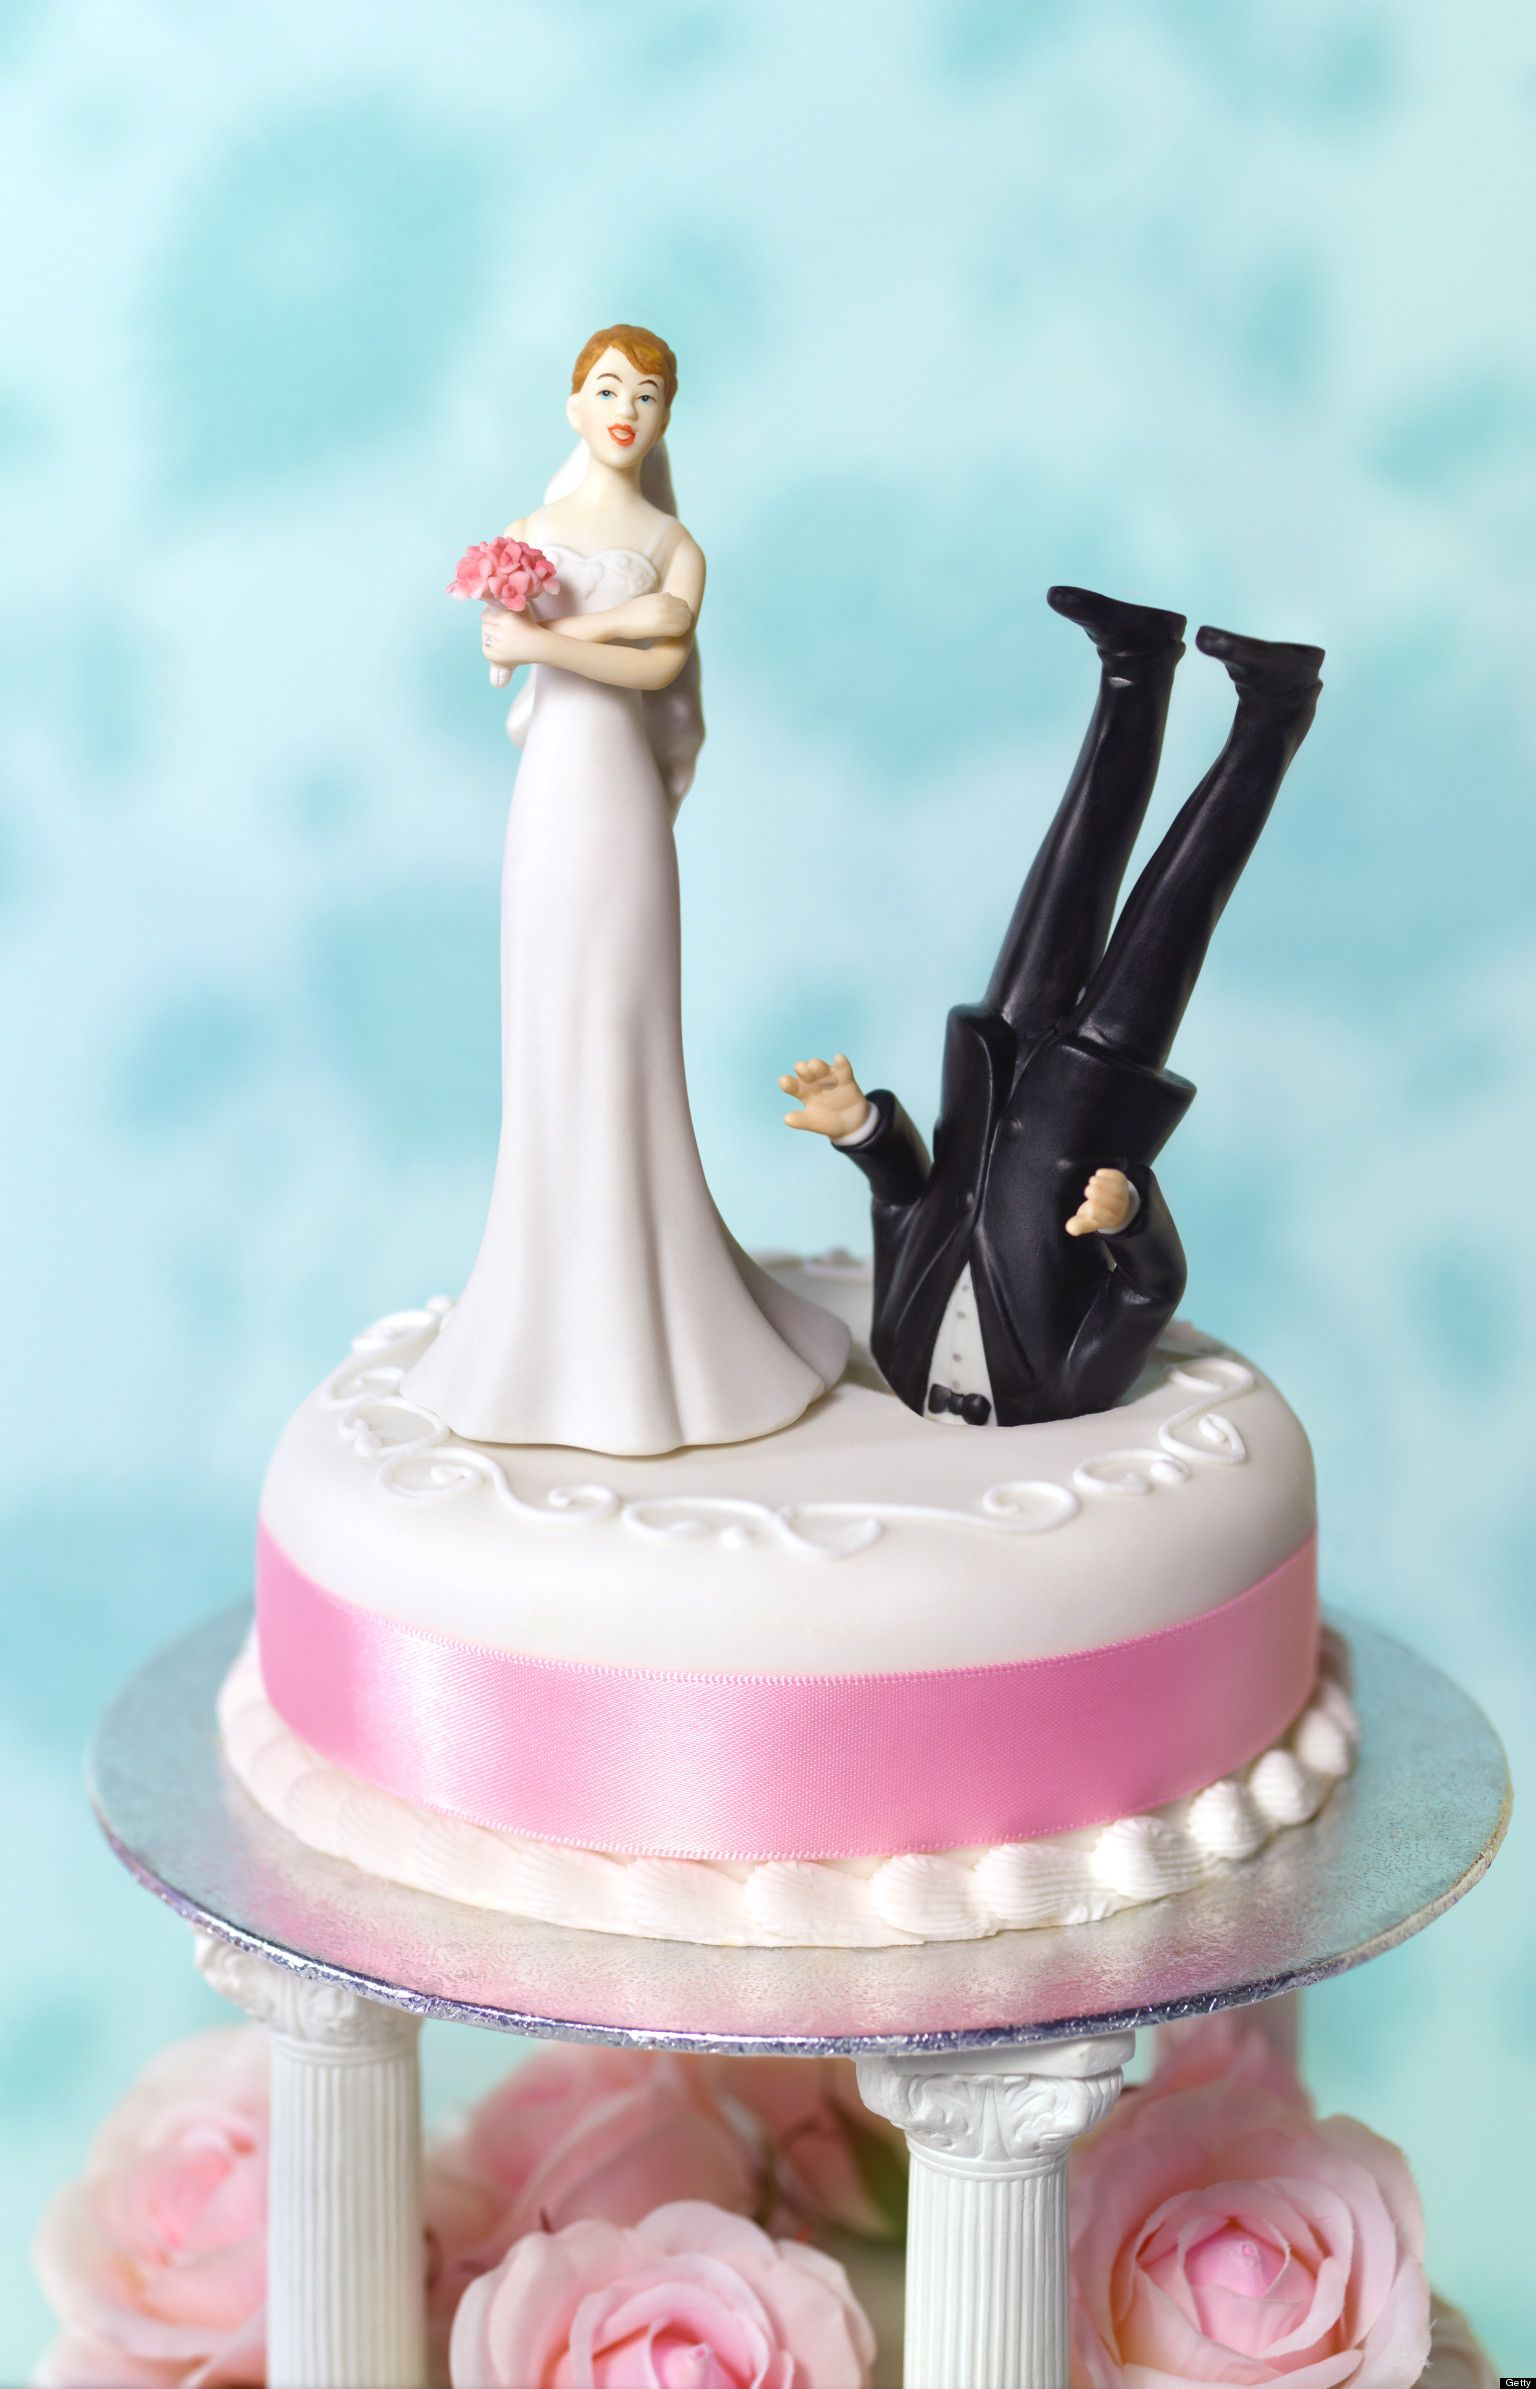 My wedding cake topper should have depicted funny weddings my wedding cake topper should have depicted junglespirit Image collections